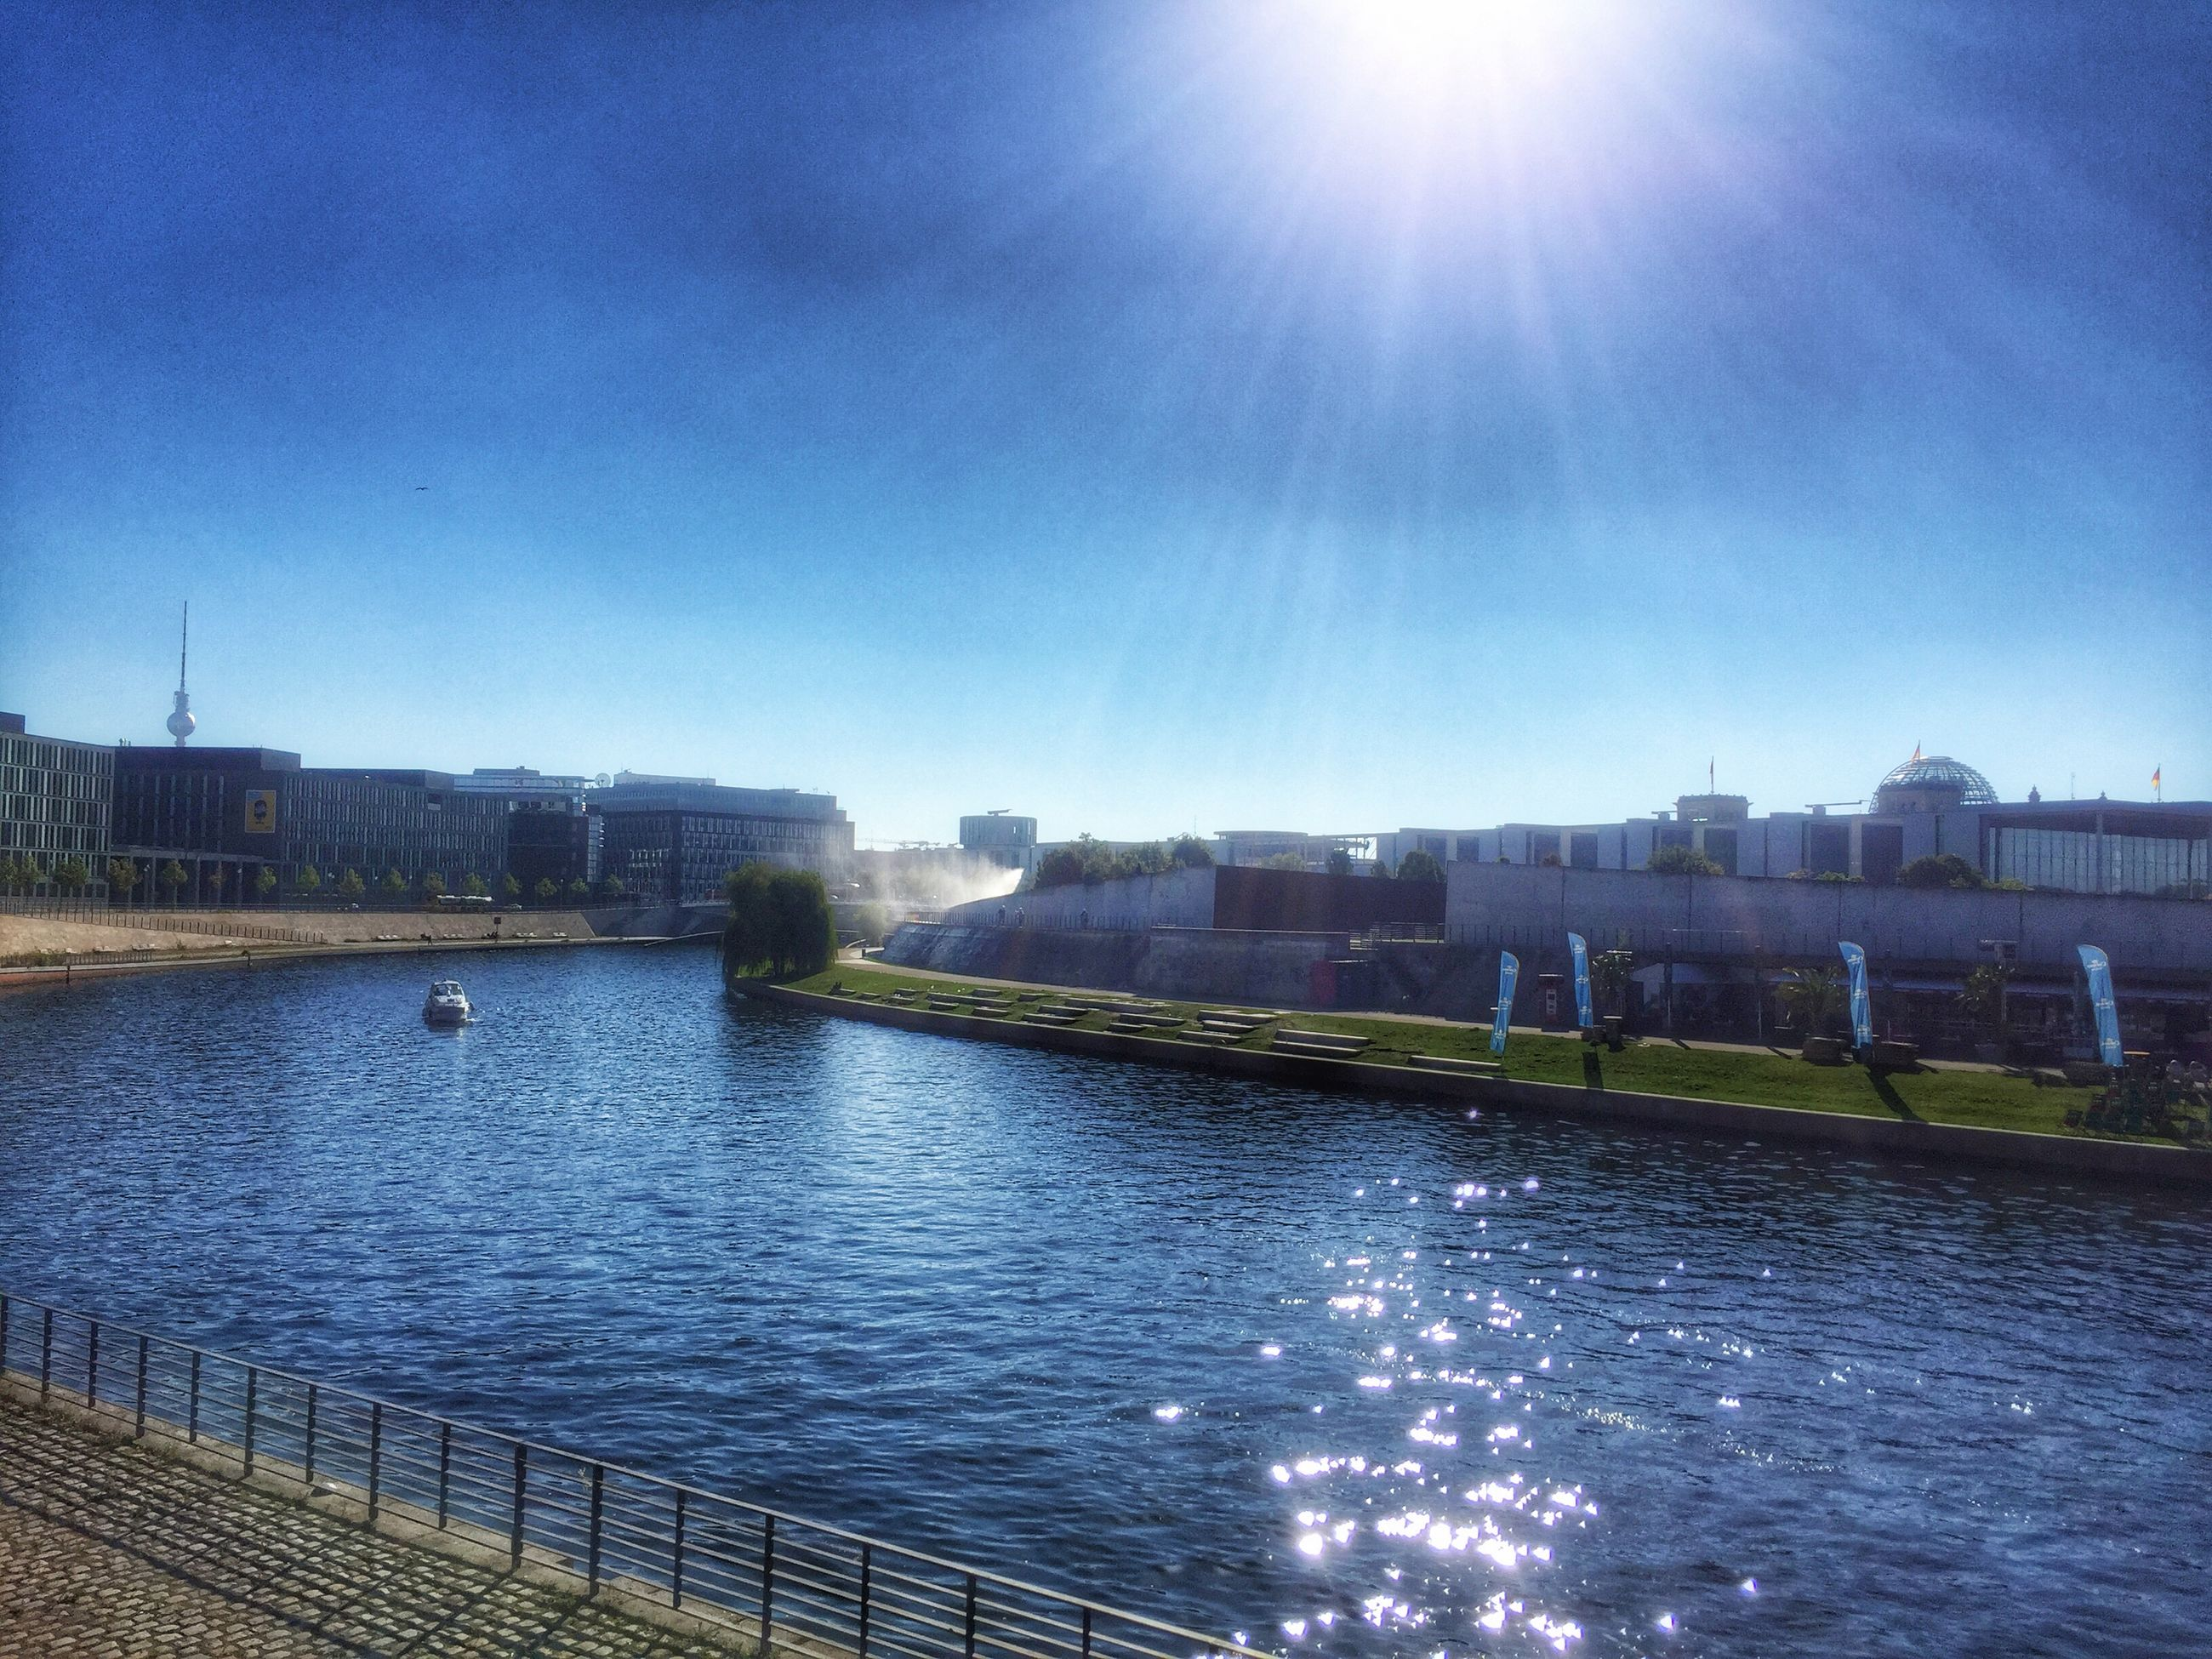 building exterior, architecture, built structure, water, sunlight, blue, city, sun, clear sky, sunbeam, river, waterfront, sunny, lens flare, sky, reflection, canal, day, rippled, outdoors